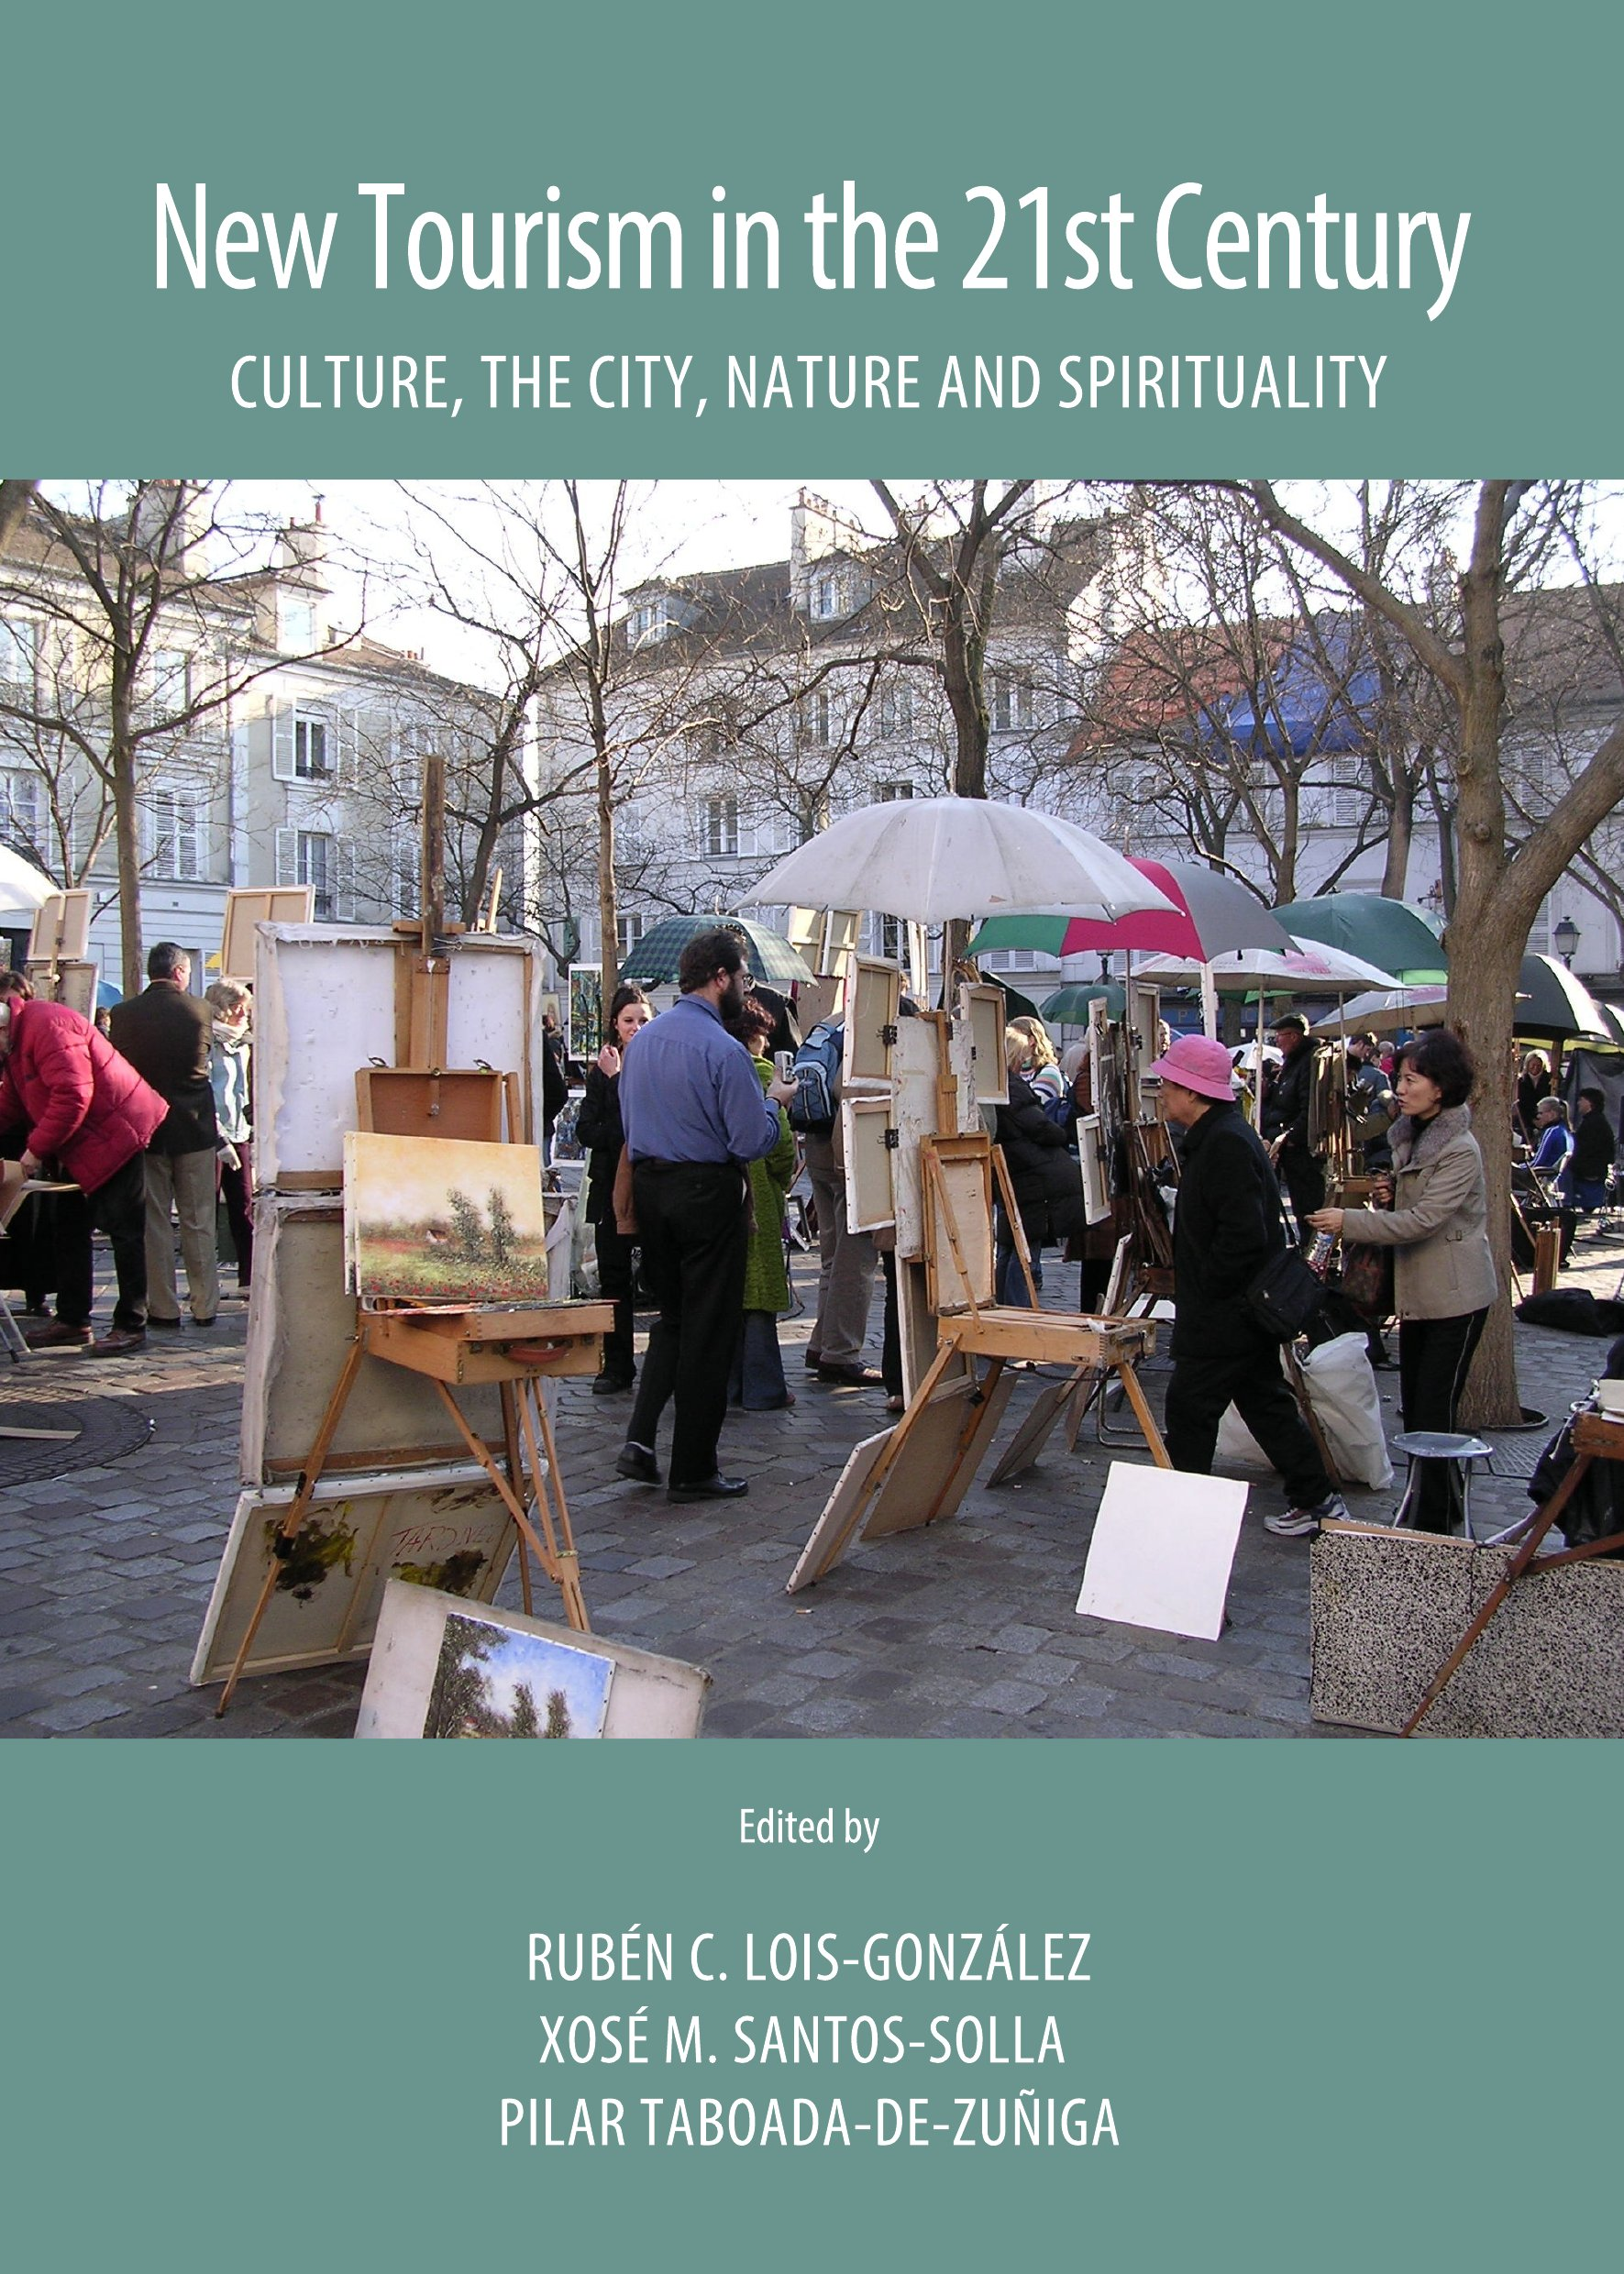 New Tourism in the 21st Century: Culture, the City, Nature and Spirituality